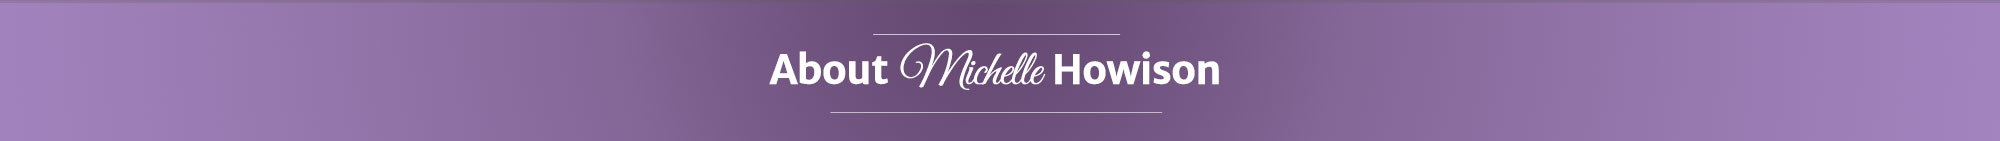 About Michelle Howison